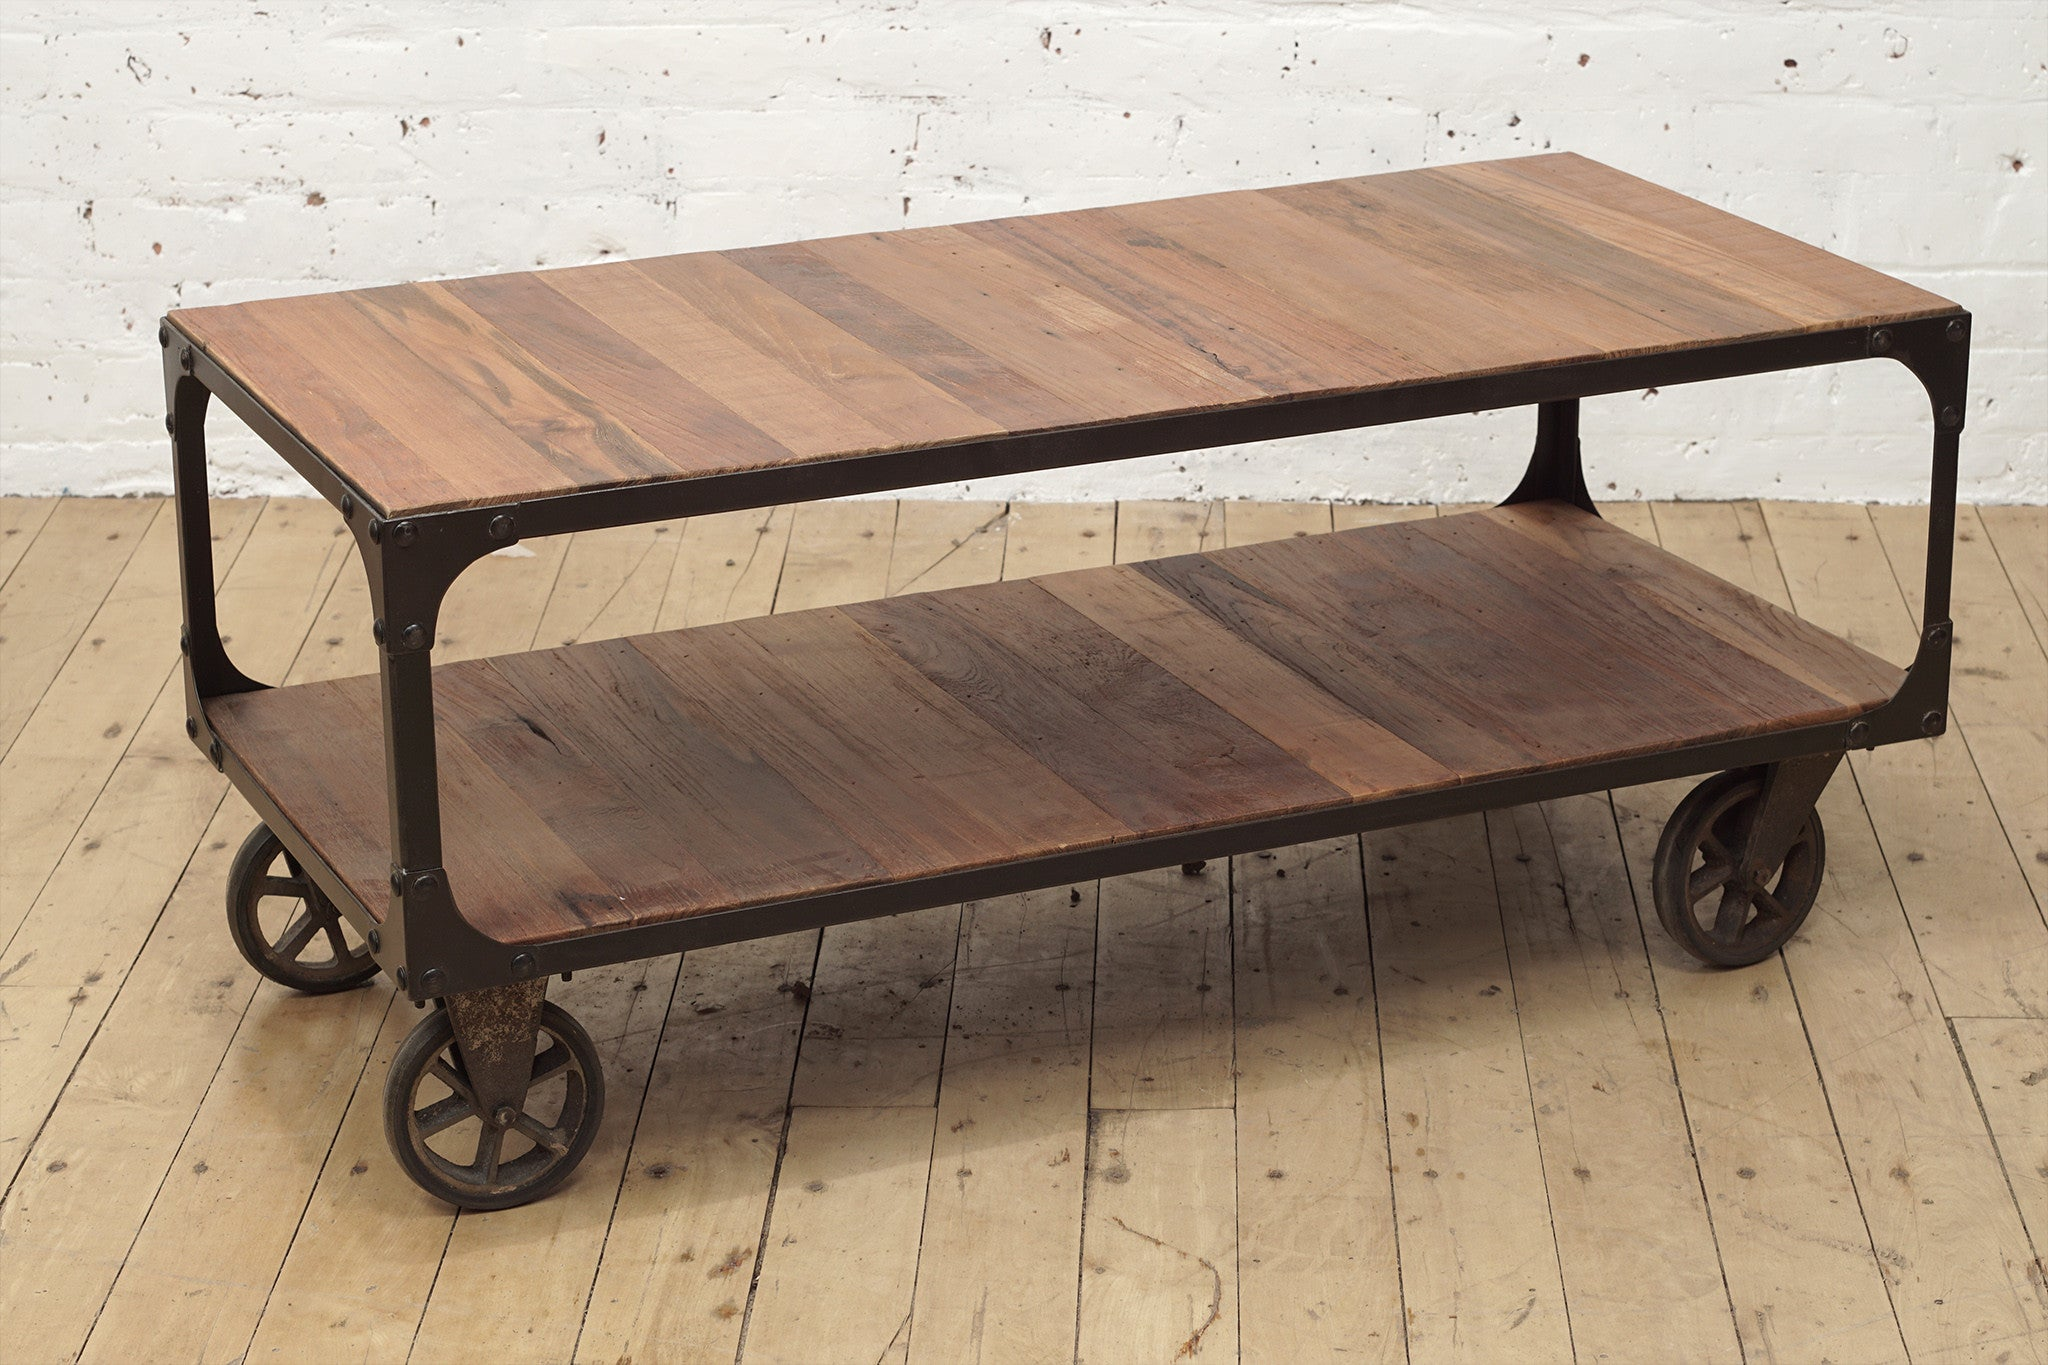 Caravan Coffee Table from the source